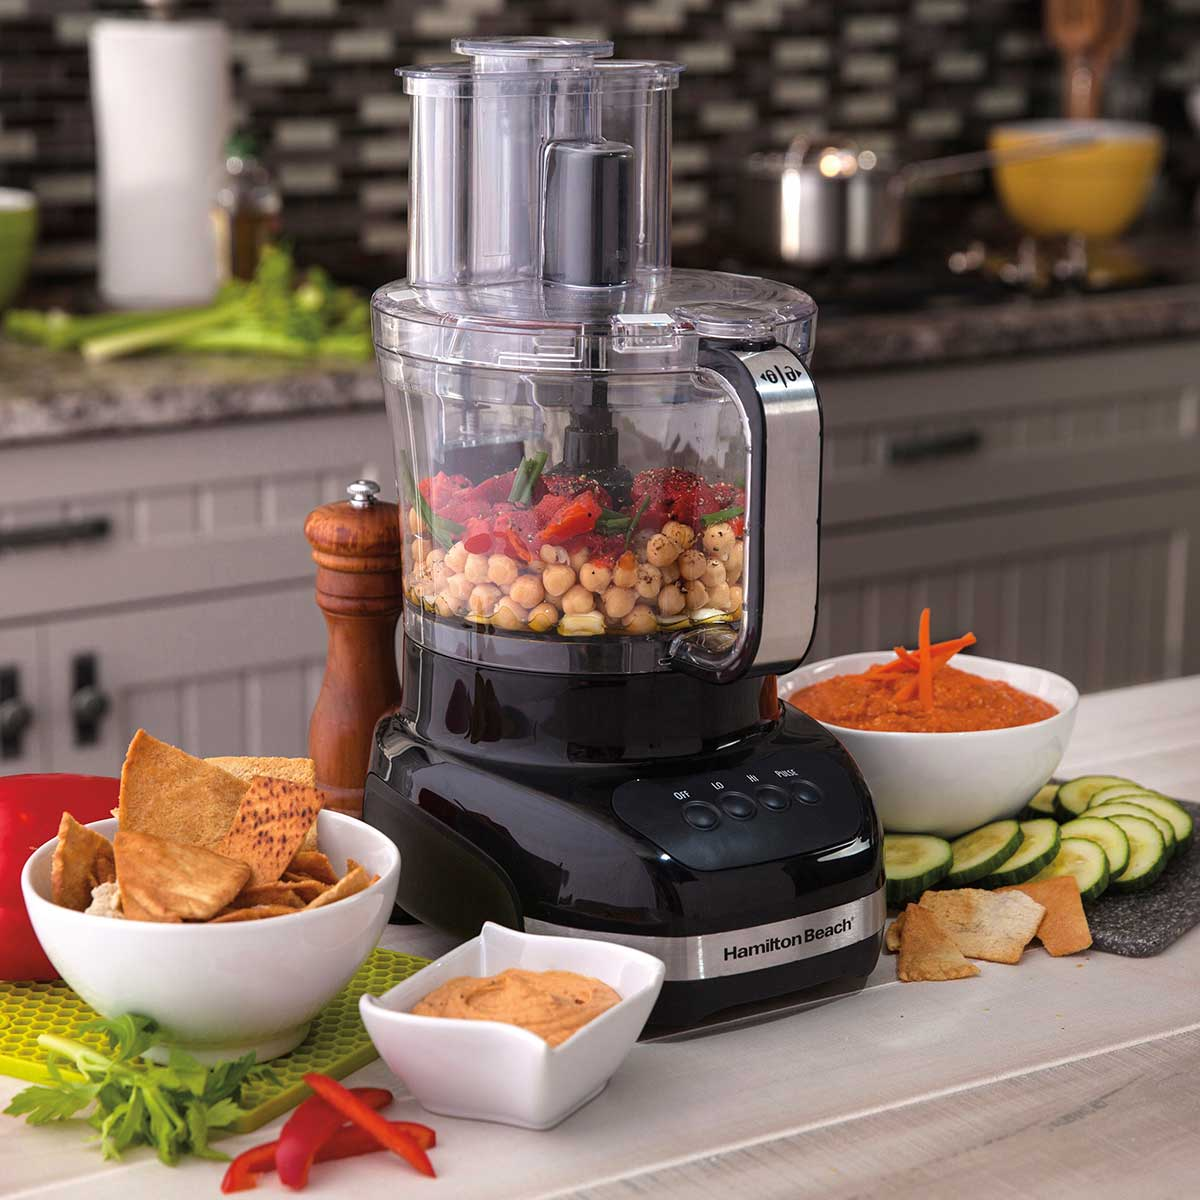 12-Cup Big Mouth® Duo Plus Food Processor with 2 Bowls, Touch Pad Controls, Black (70580)